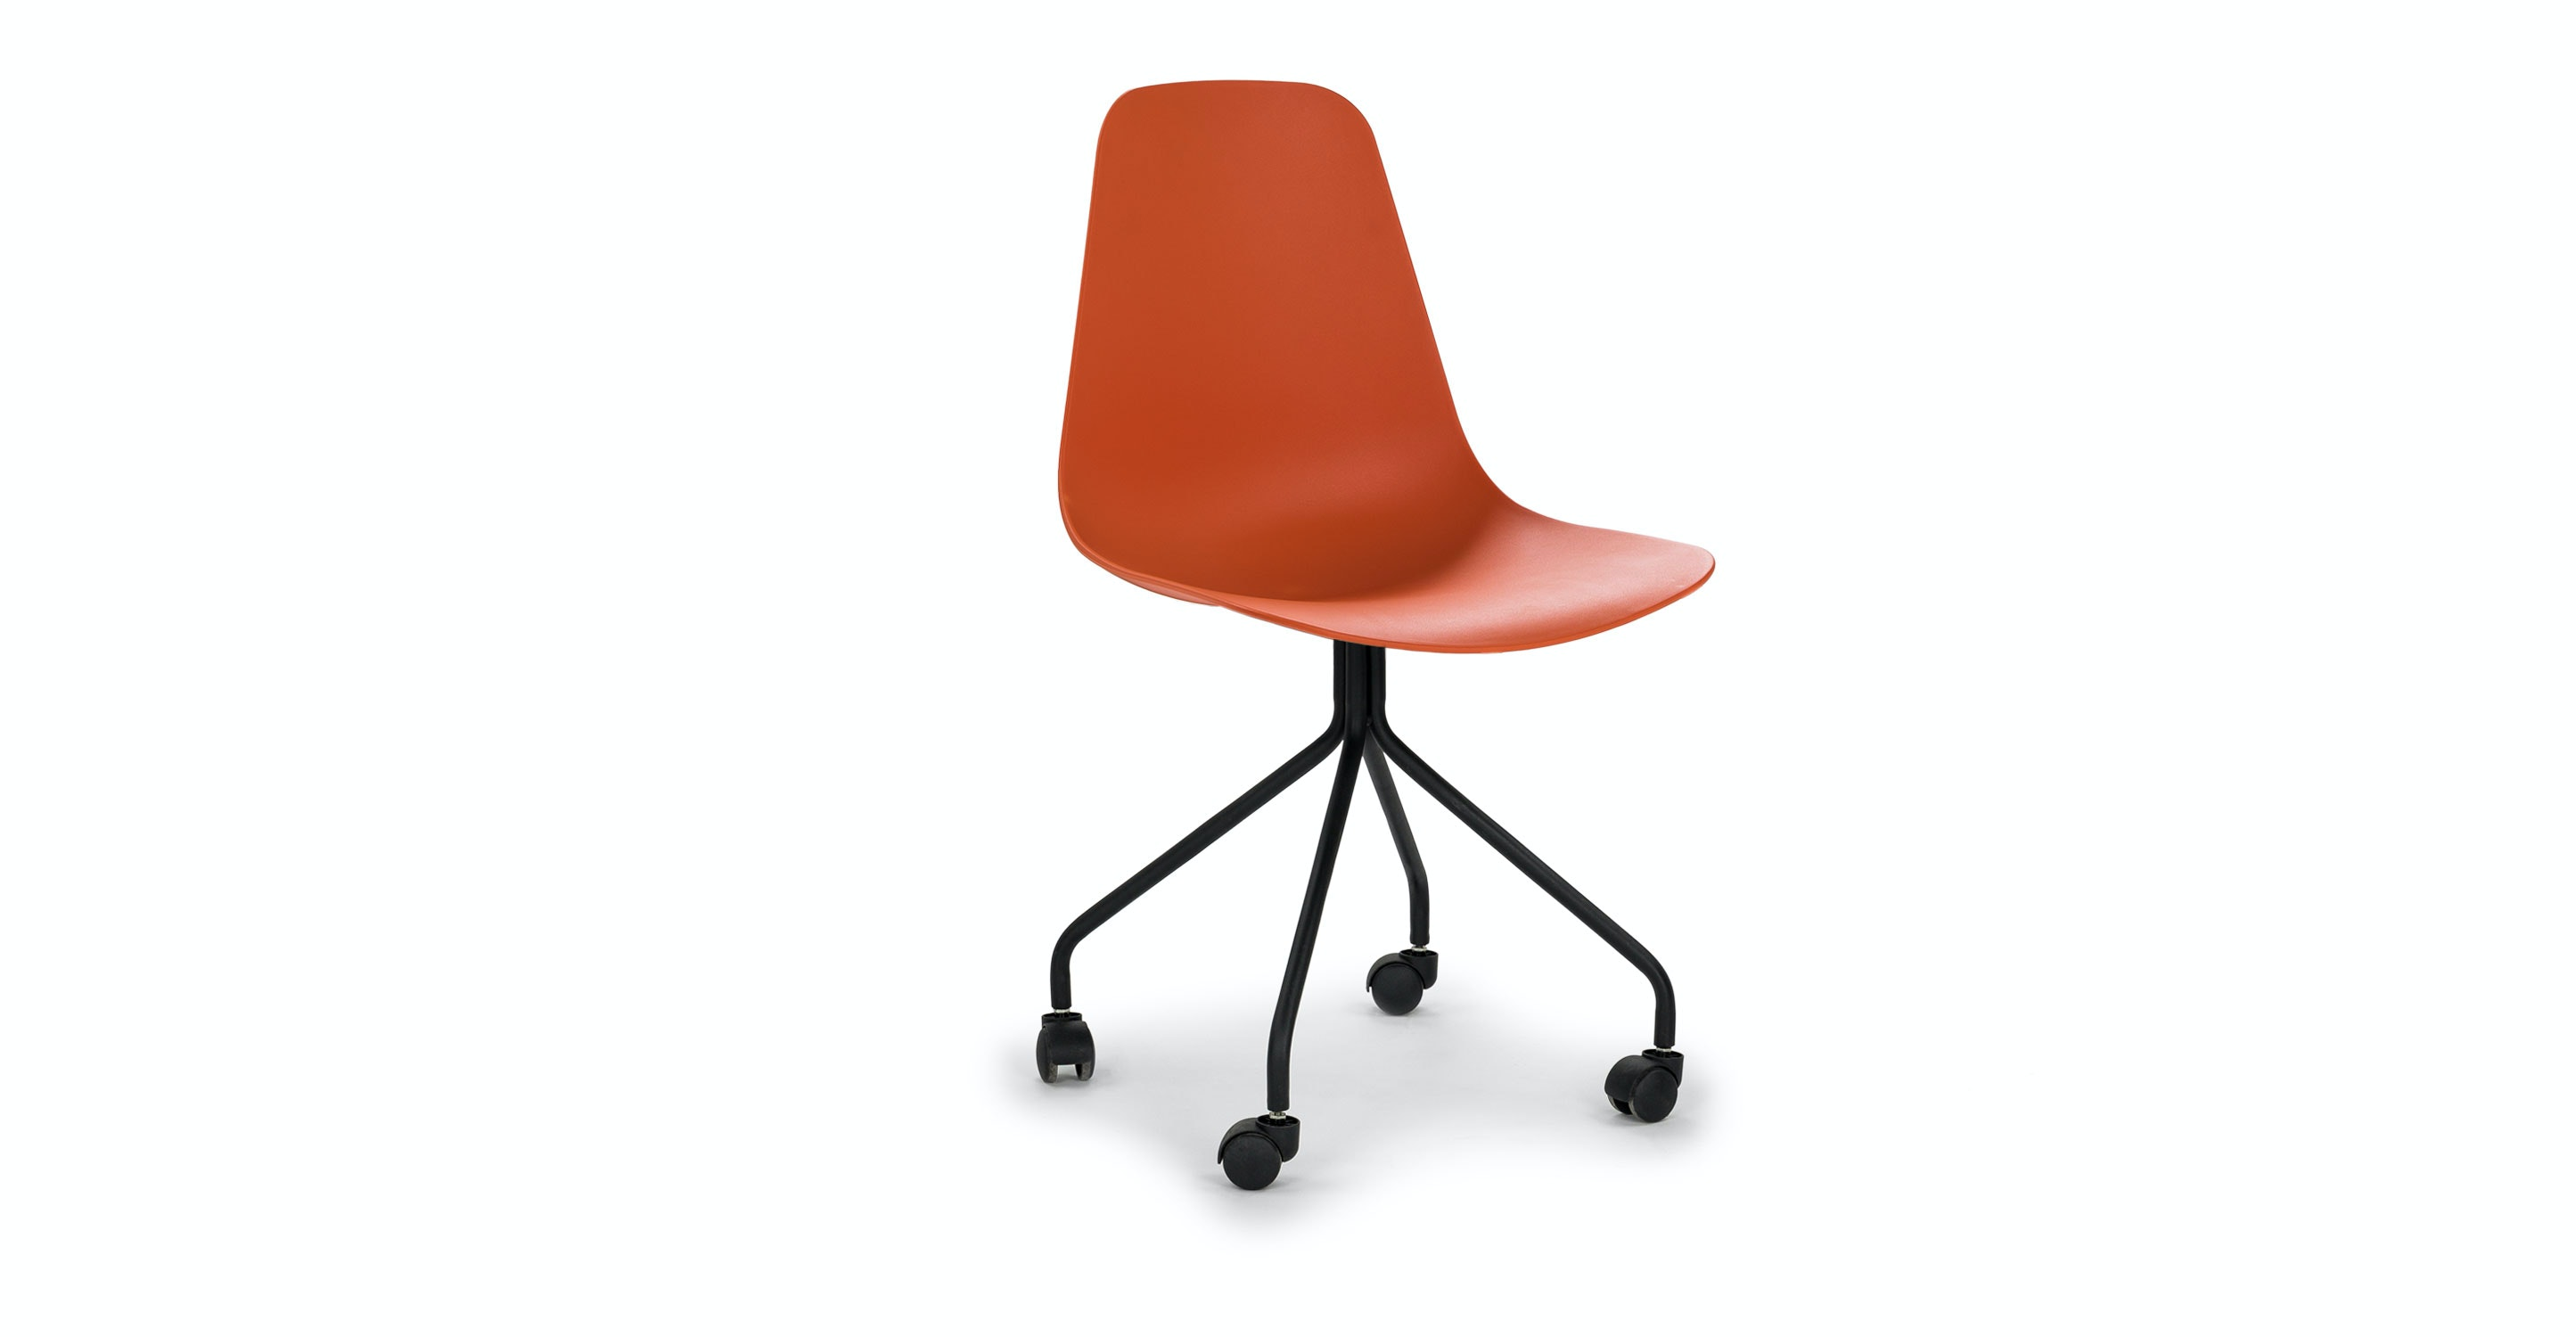 orange office furniture. Orange Office Furniture. Svelti Pure Black Chair - Chairs Article | Modern, Mid Furniture